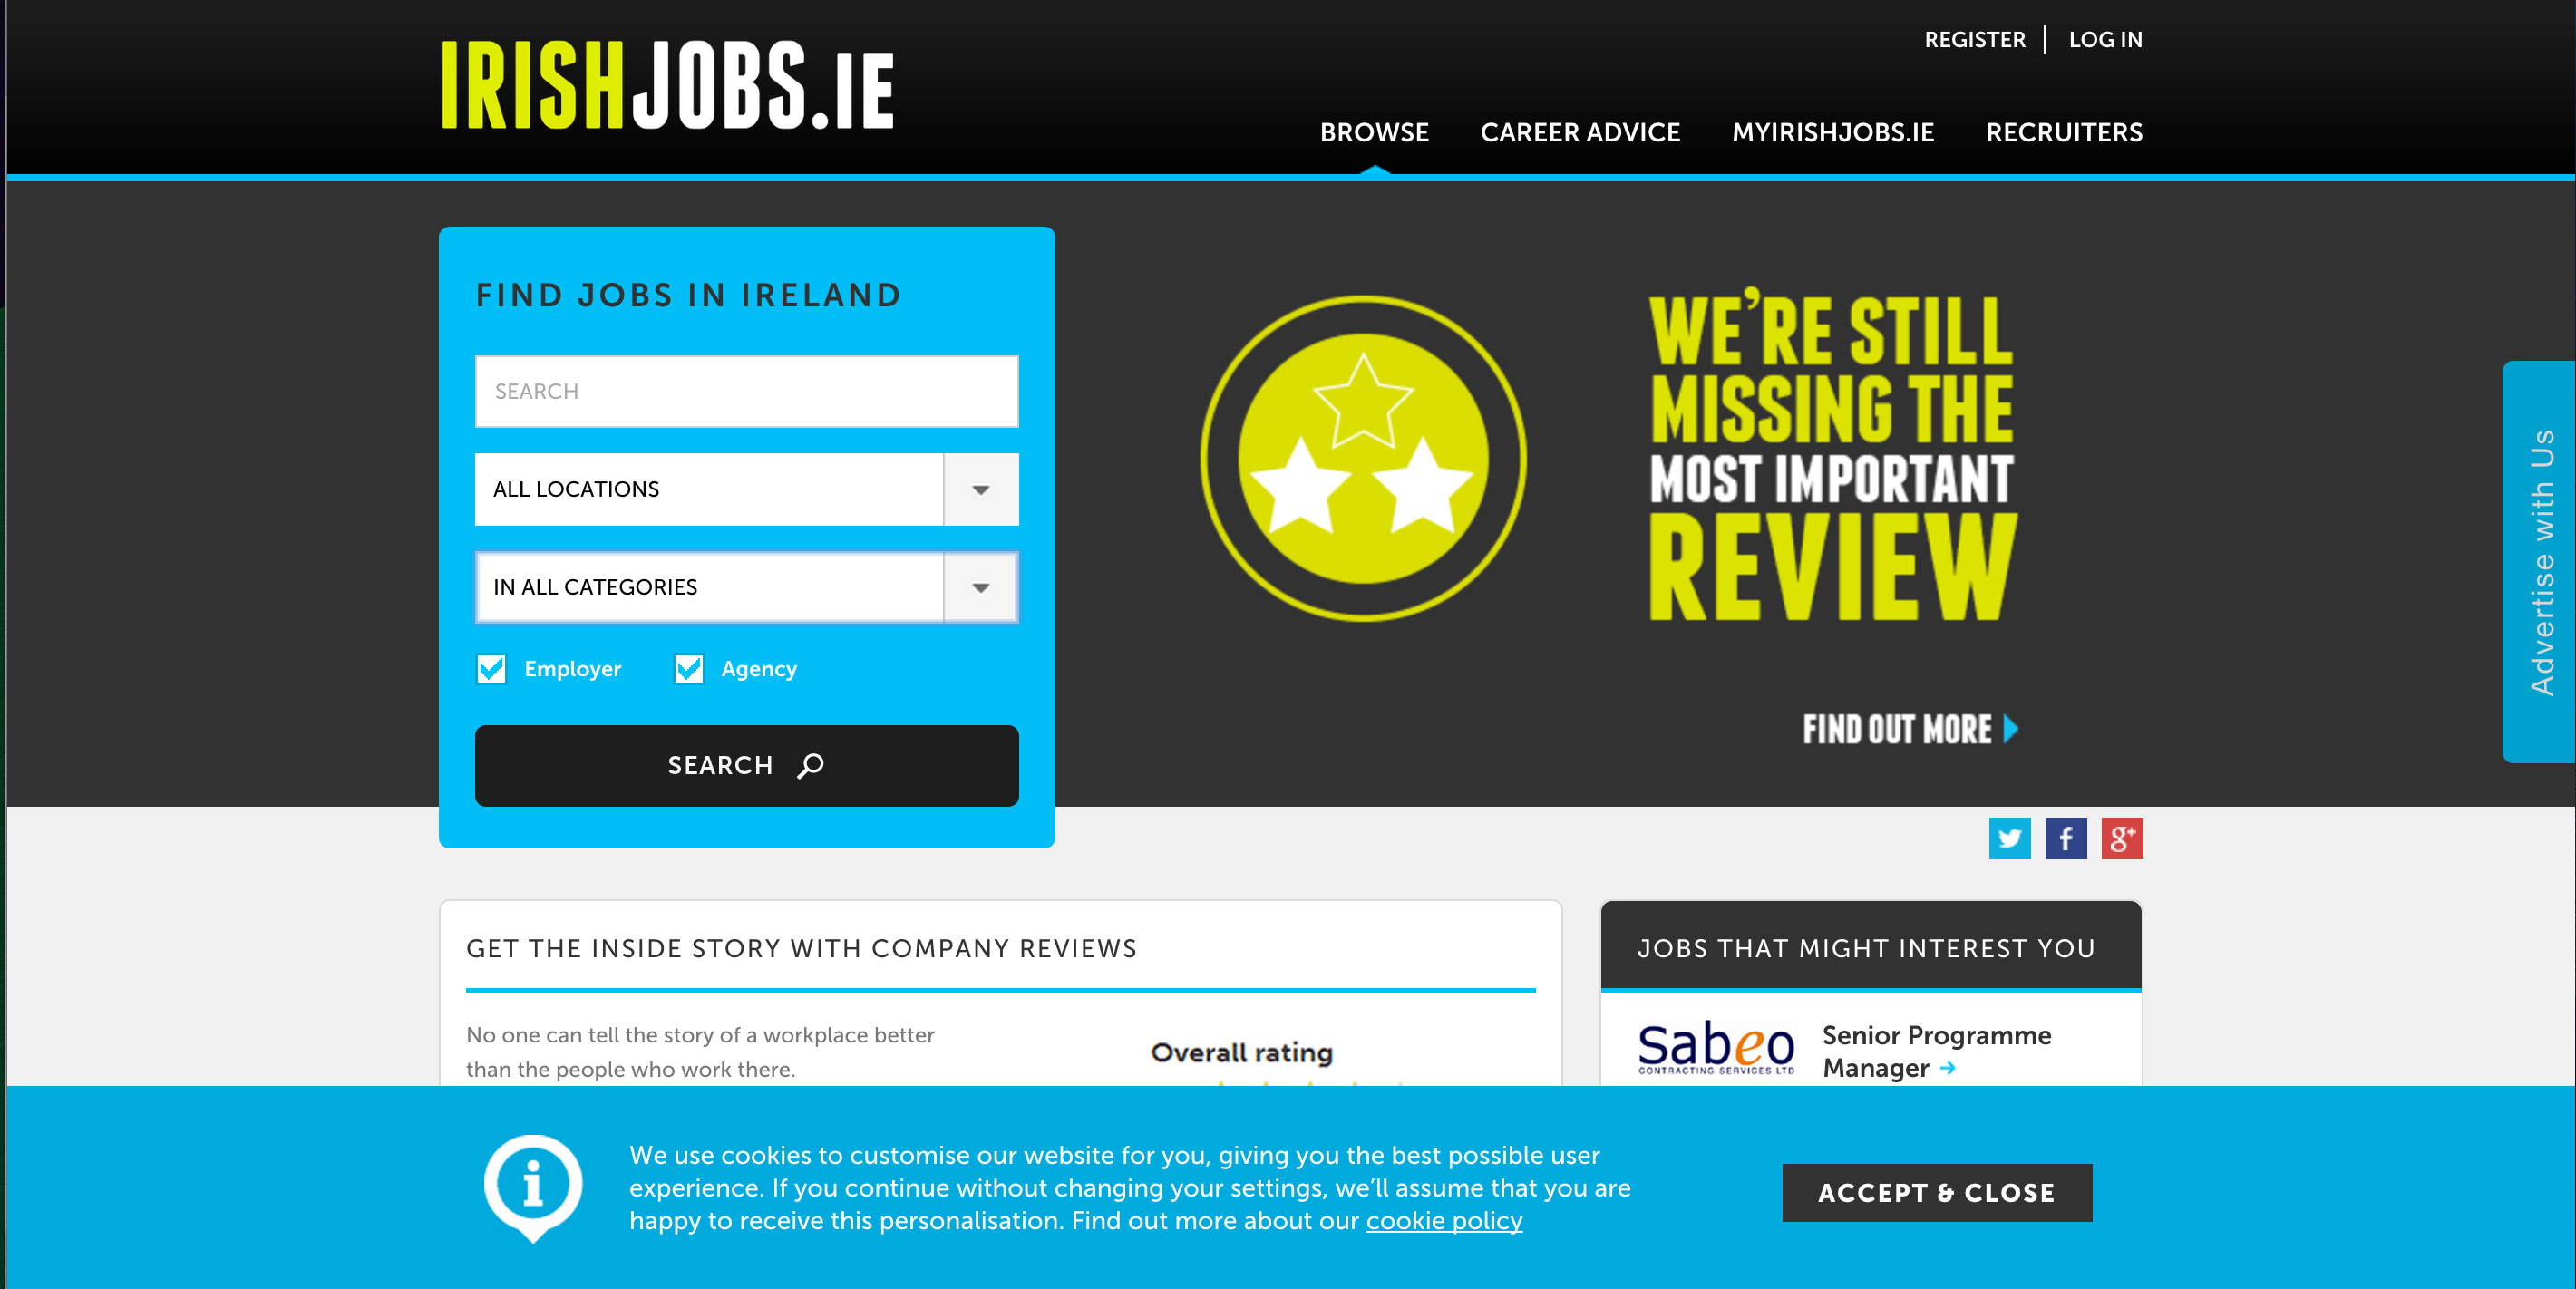 sites-para-encontrar-emprego-na-irlanda